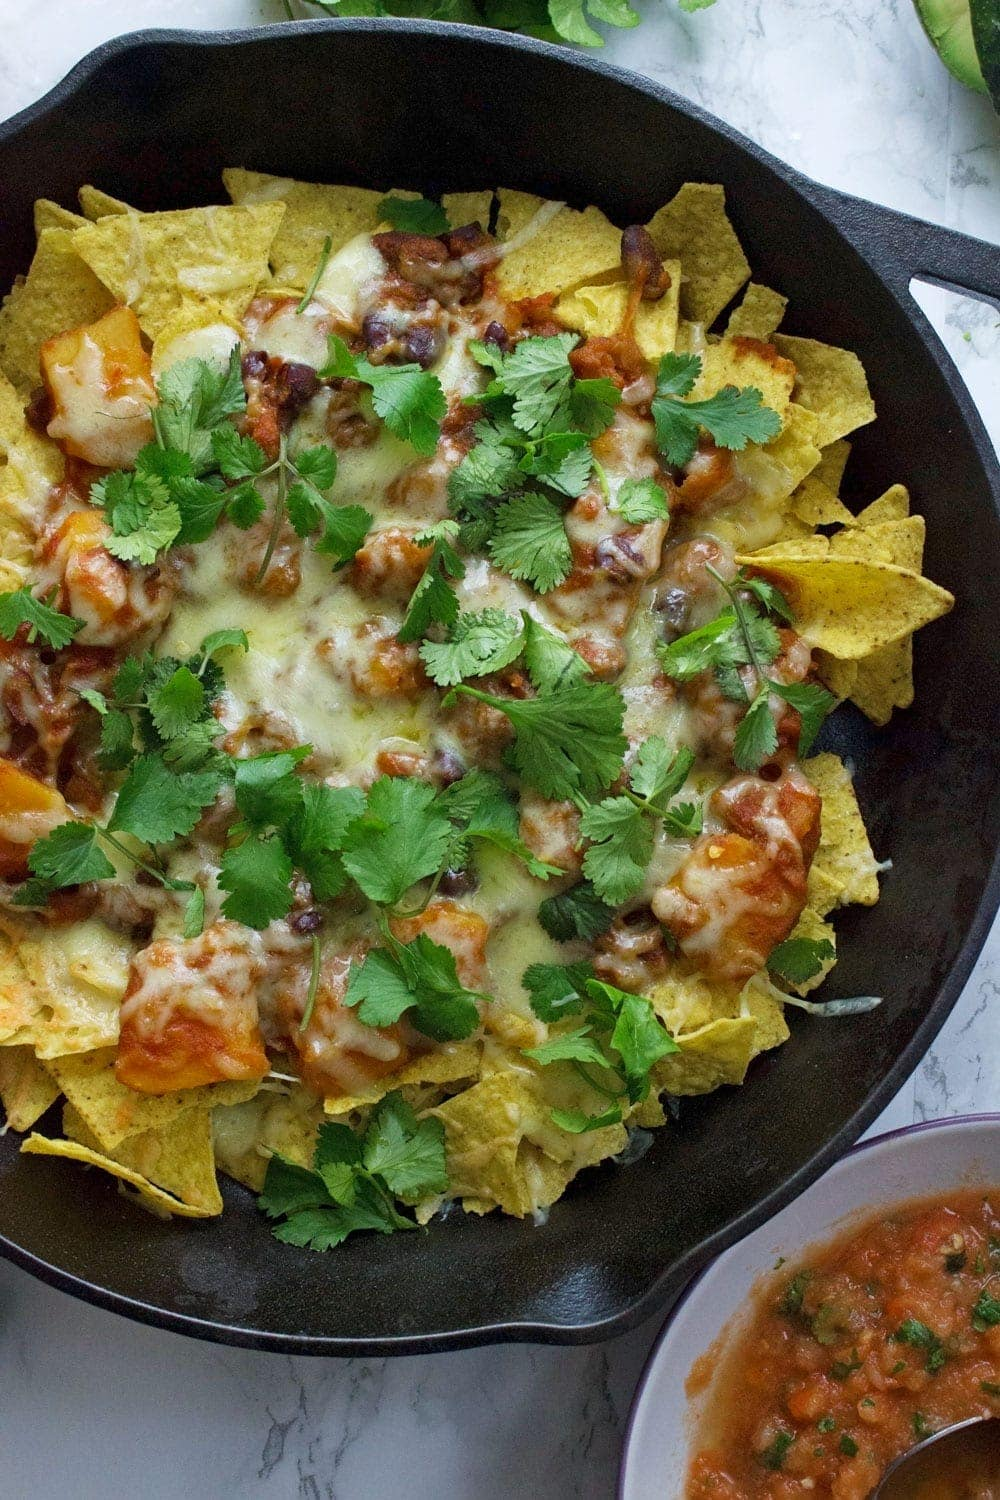 This healthy butternut squash chilli makes the perfect topping for these vegetarian nachos. Add all your favourite toppings for a delicious twist on a classic!